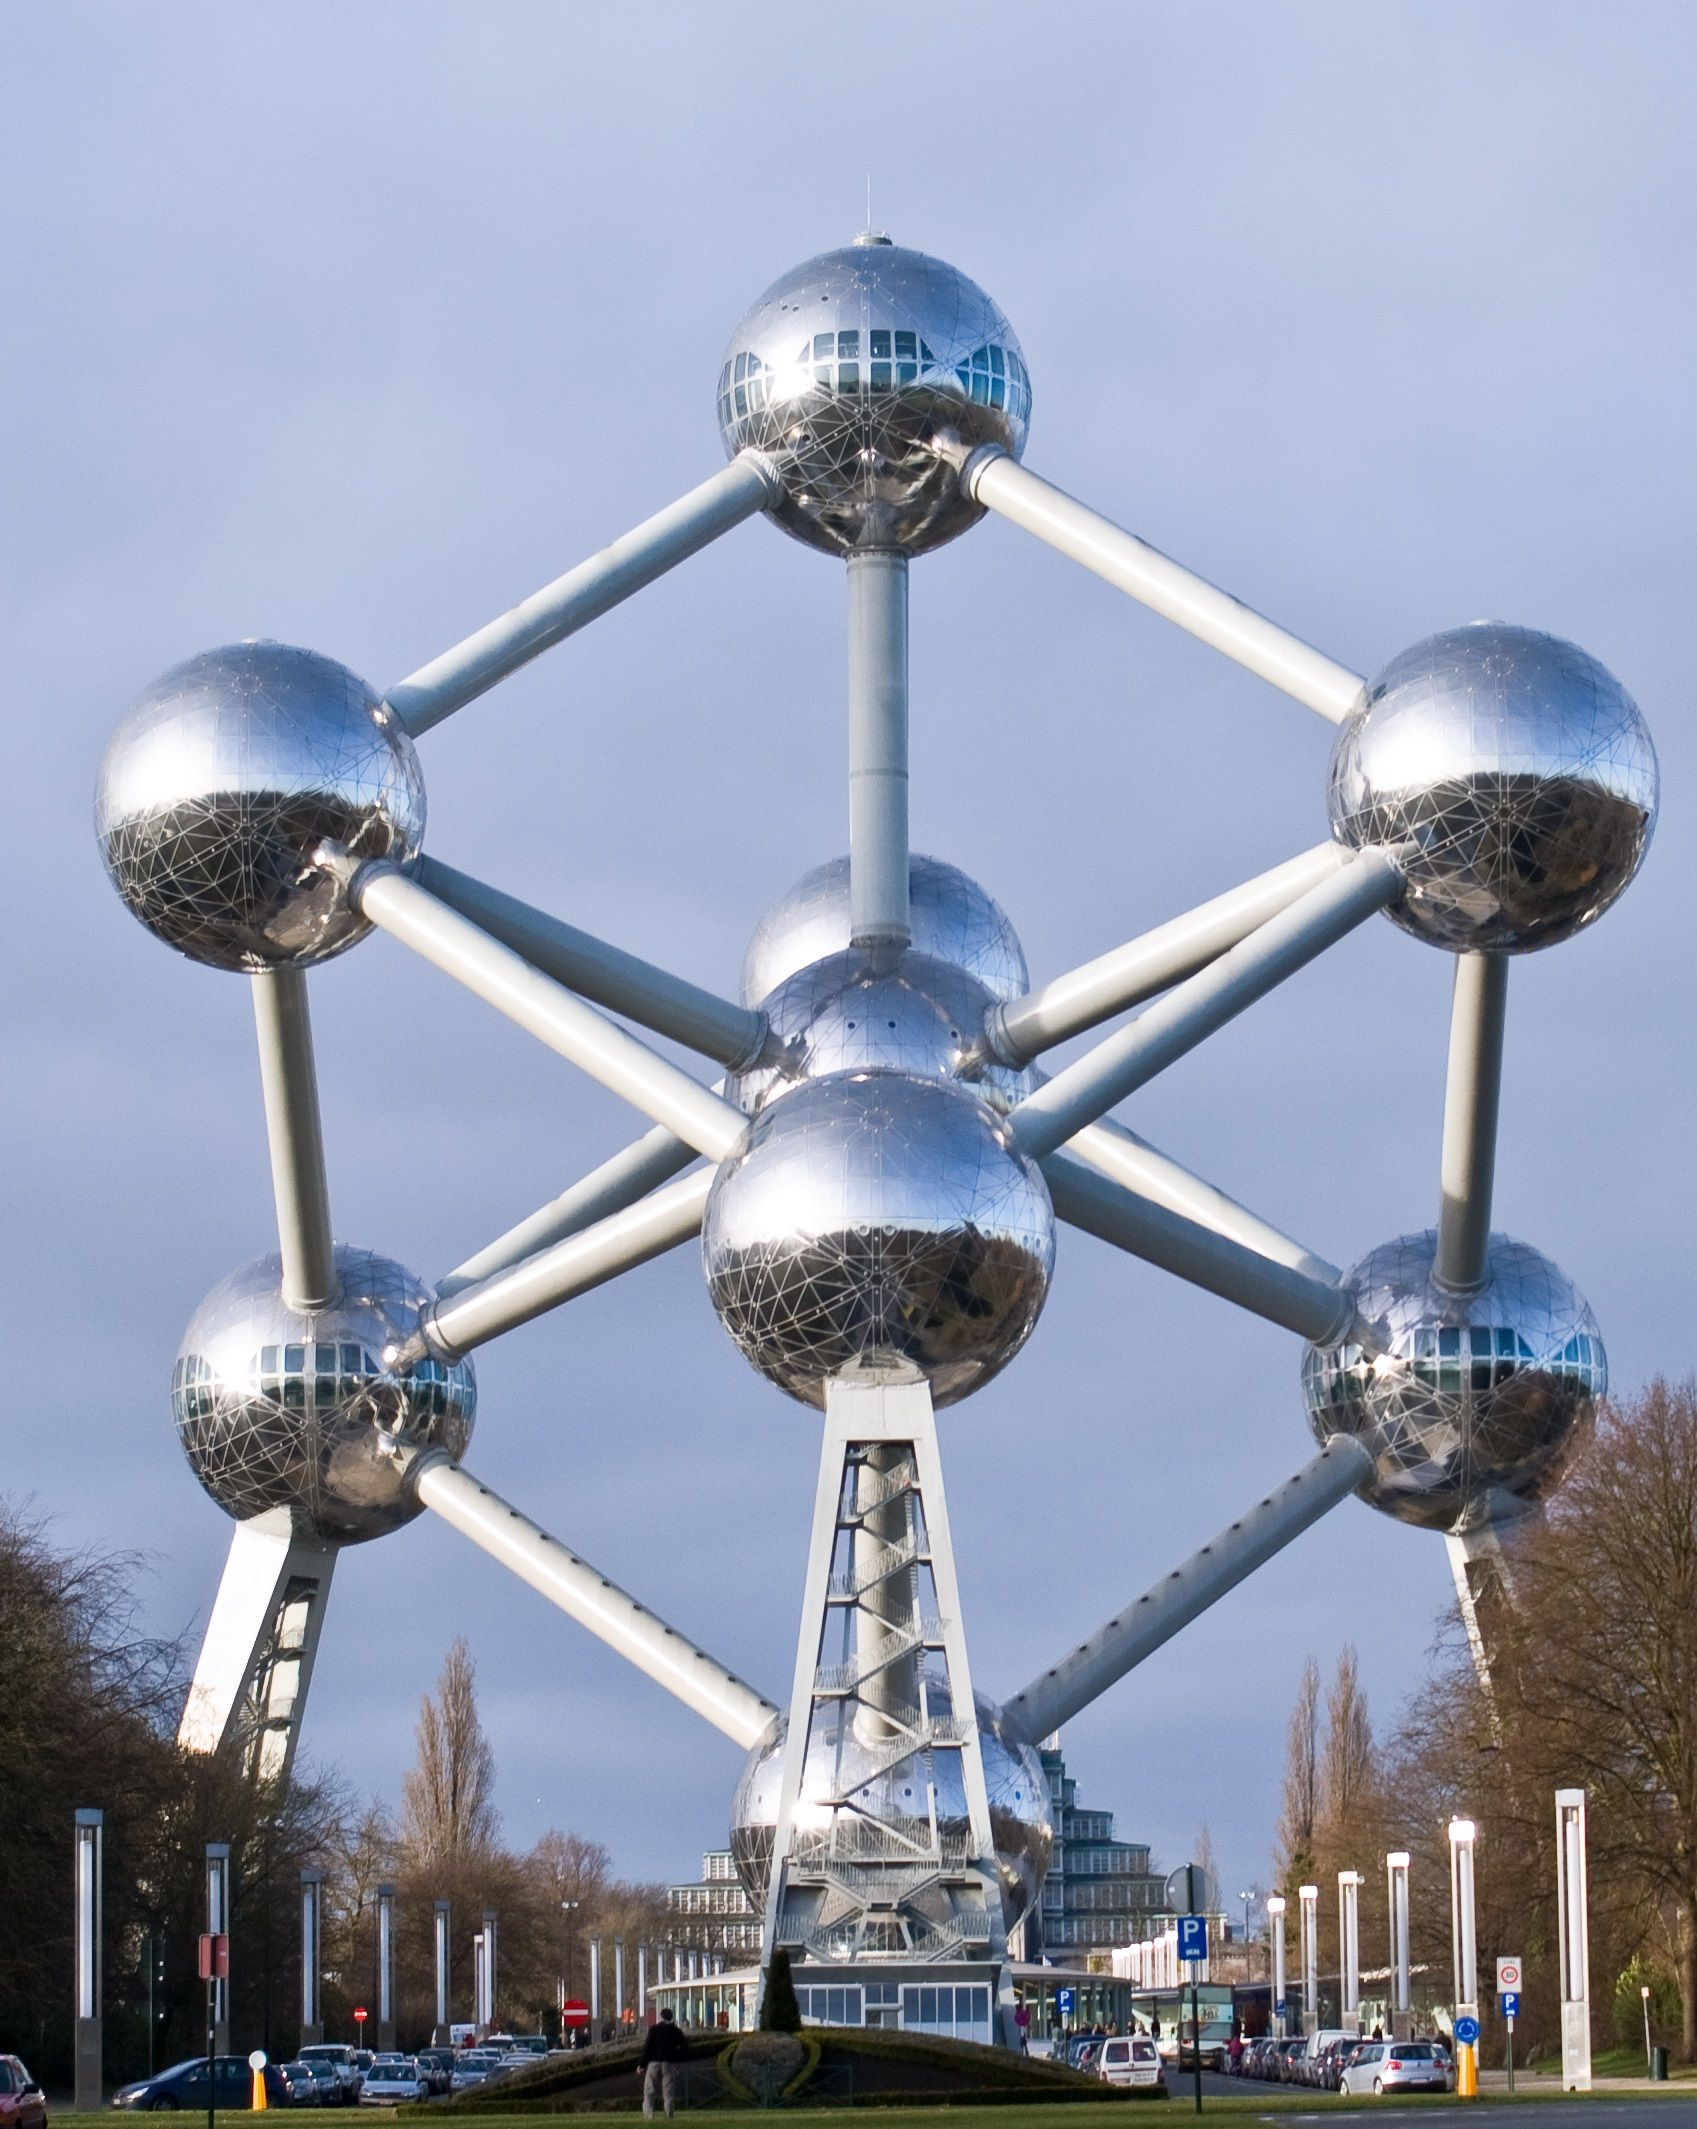 Atomium Brussels Belgium Top unusual buildings around the world..which is your favourite??